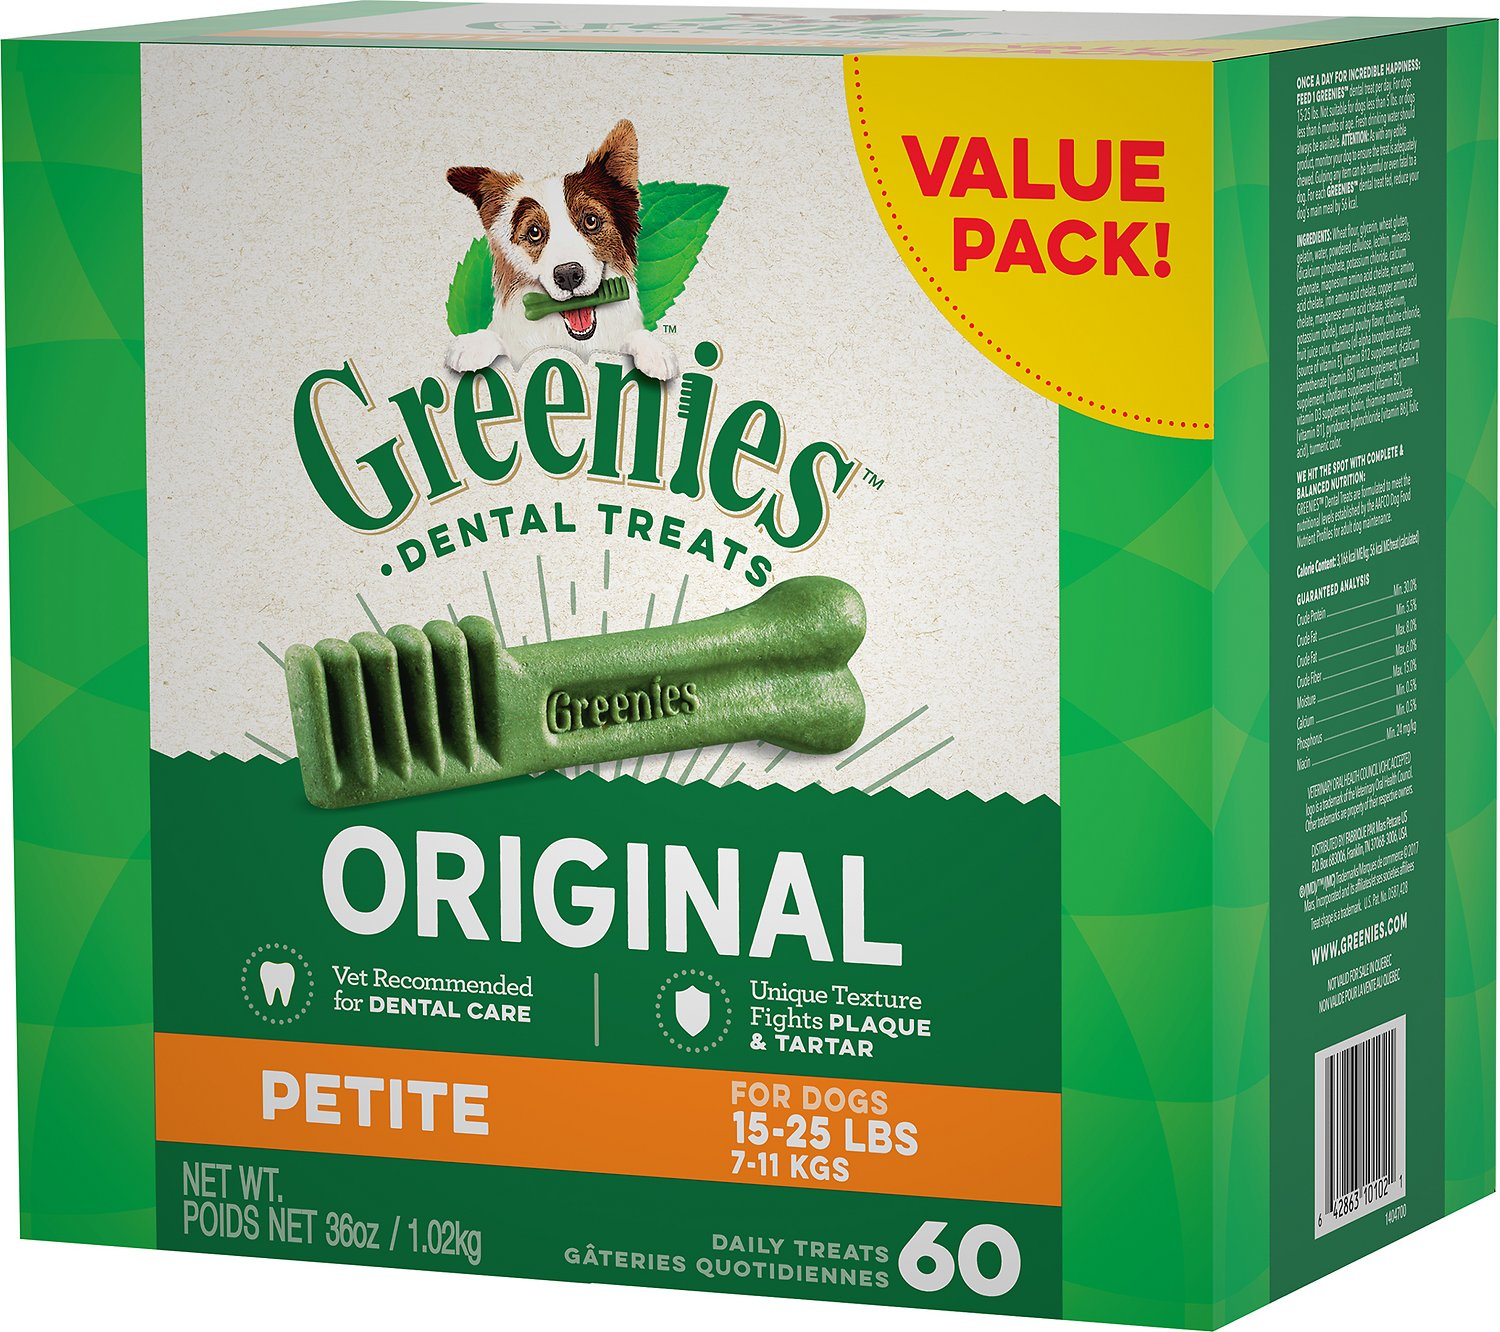 Greenies Original Petite Dental Dog Treats, 60-count (Size: 60-count) Image